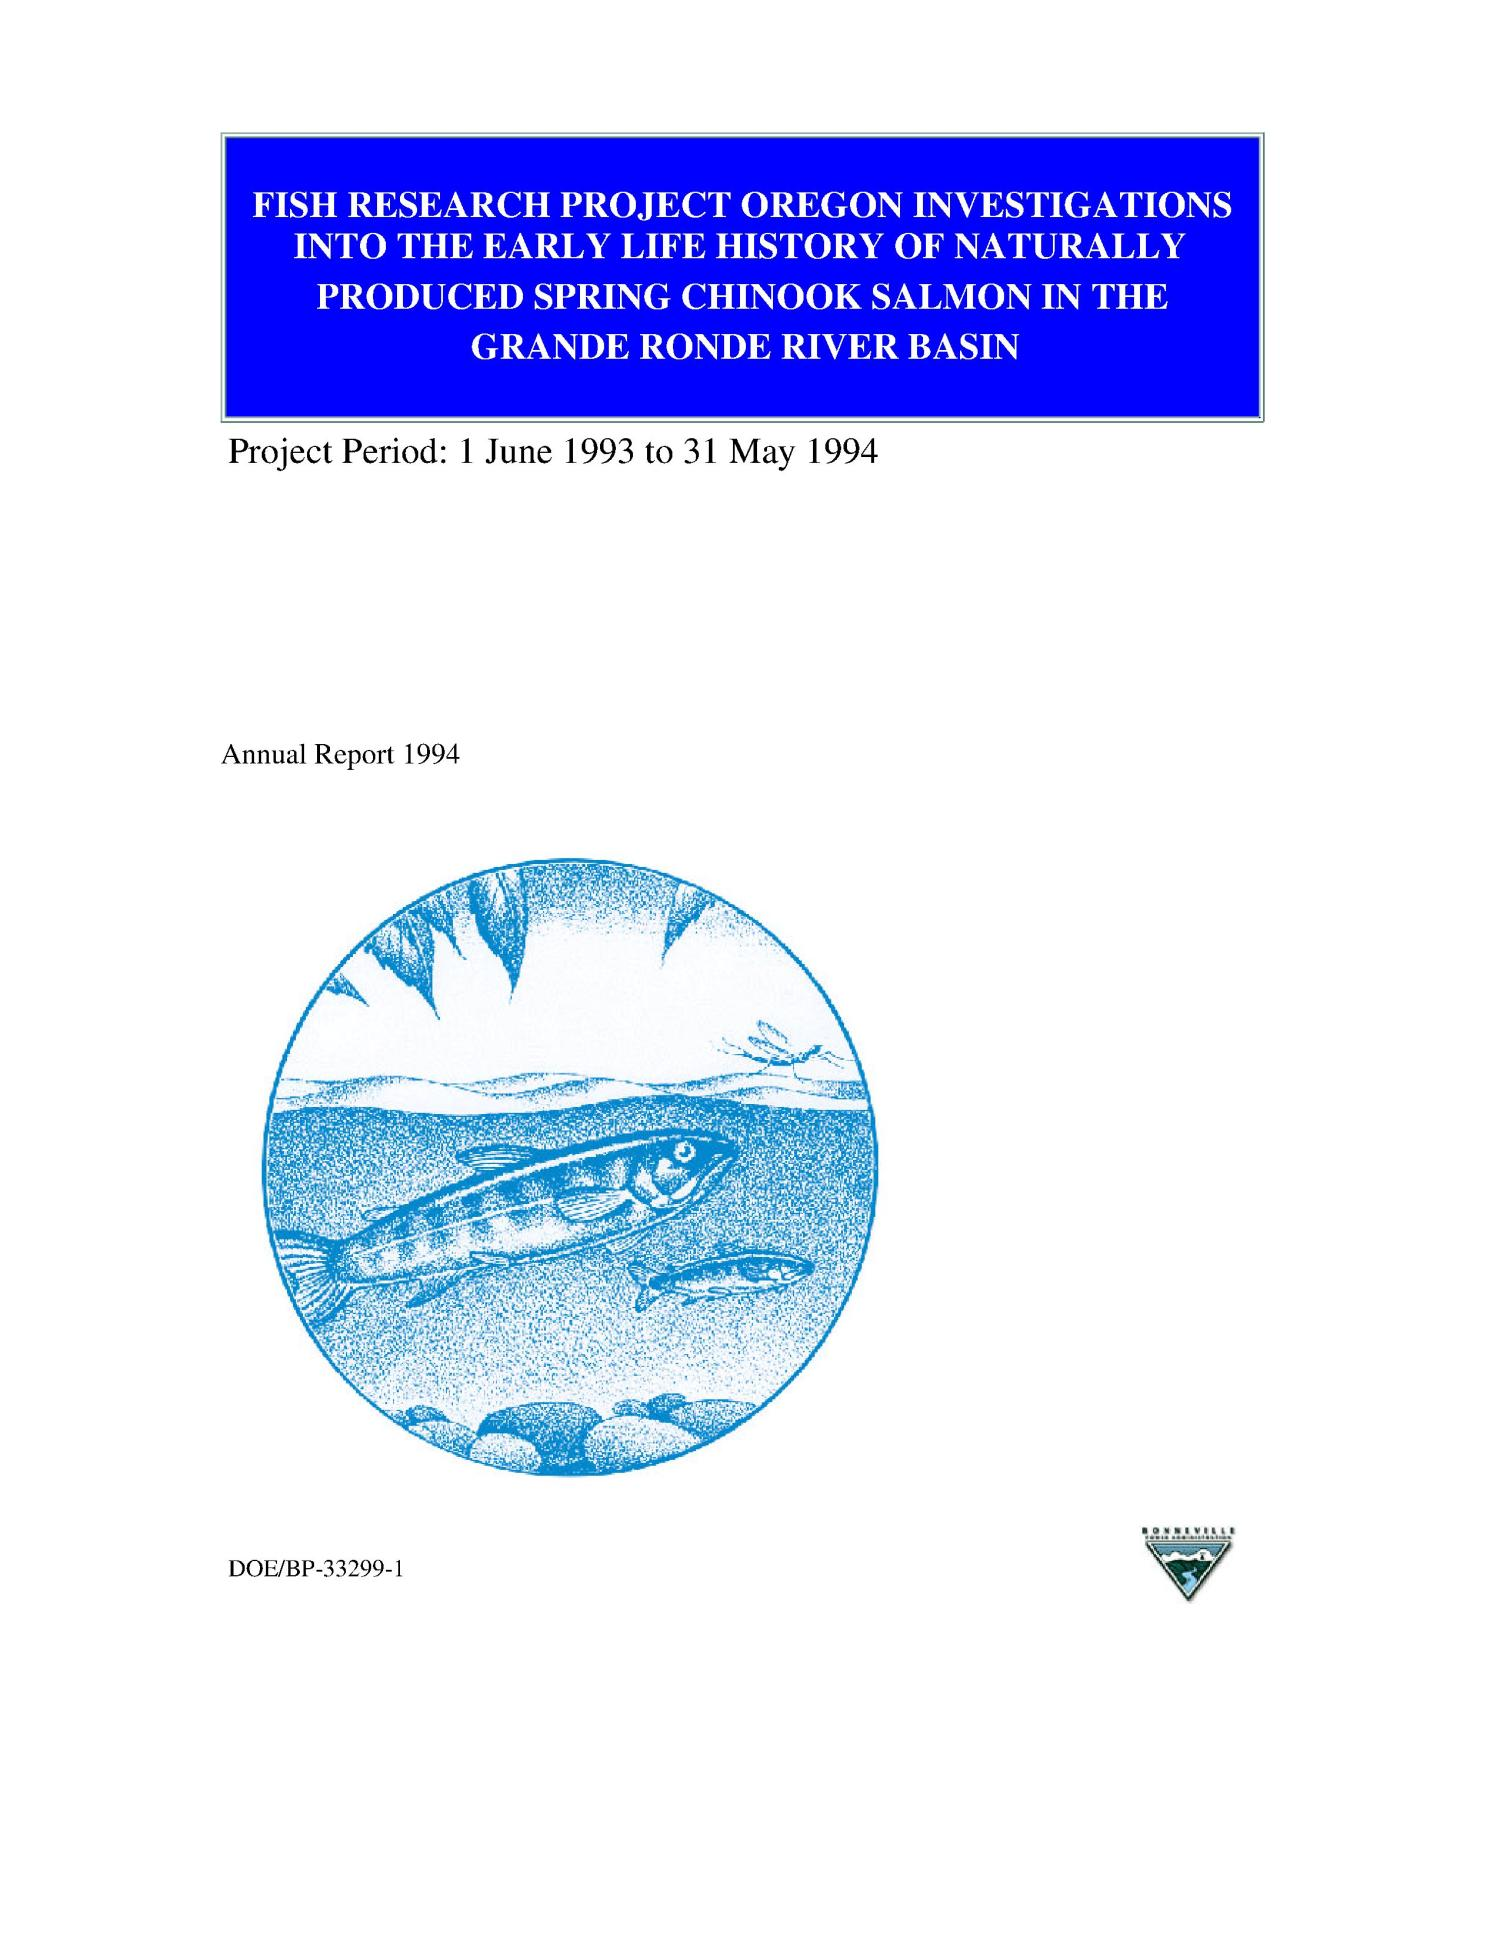 Investigations into the [Early] Life History of Spring Chinook Salmon in the Grande Ronde River Basin : Fish Research Project, Oregon : Annual Report 1994 : Project Period 1 June 1993 to 31 May 1994.                                                                                                      [Sequence #]: 1 of 41